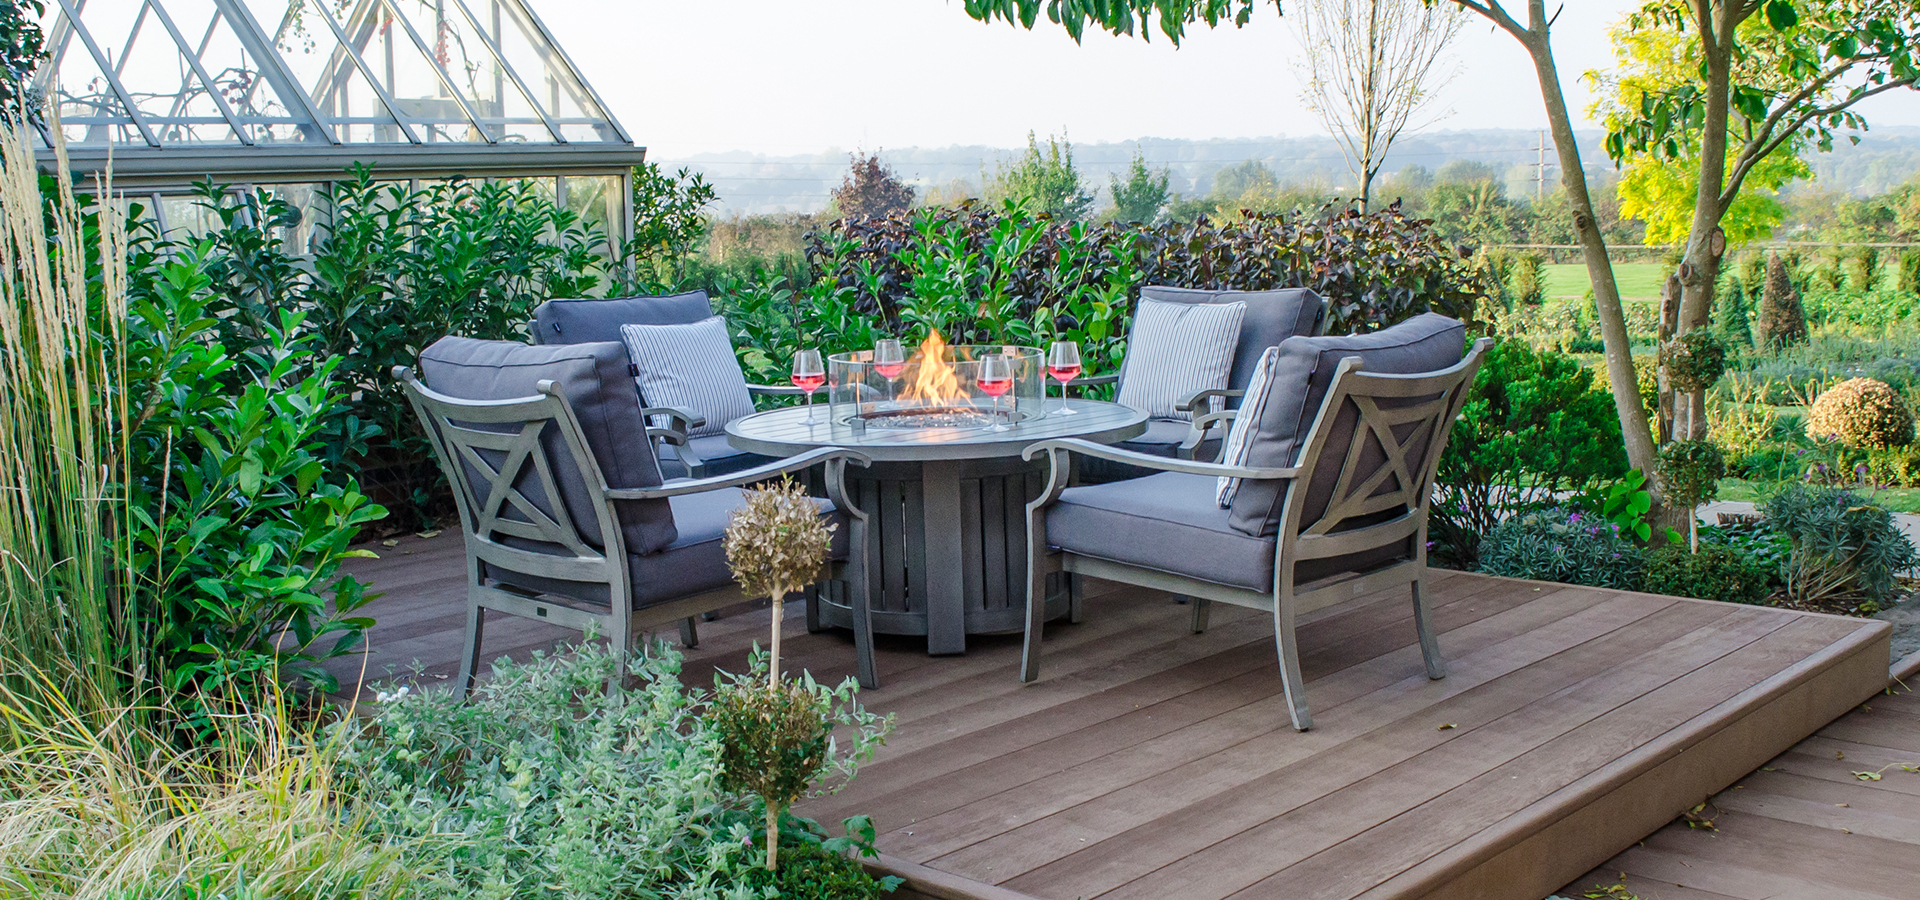 Manchester Solid Wood Garden Benches With Regard To Favorite Nova Outdoor Living – Wholesaler Of Quality Garden Furniture (View 26 of 30)